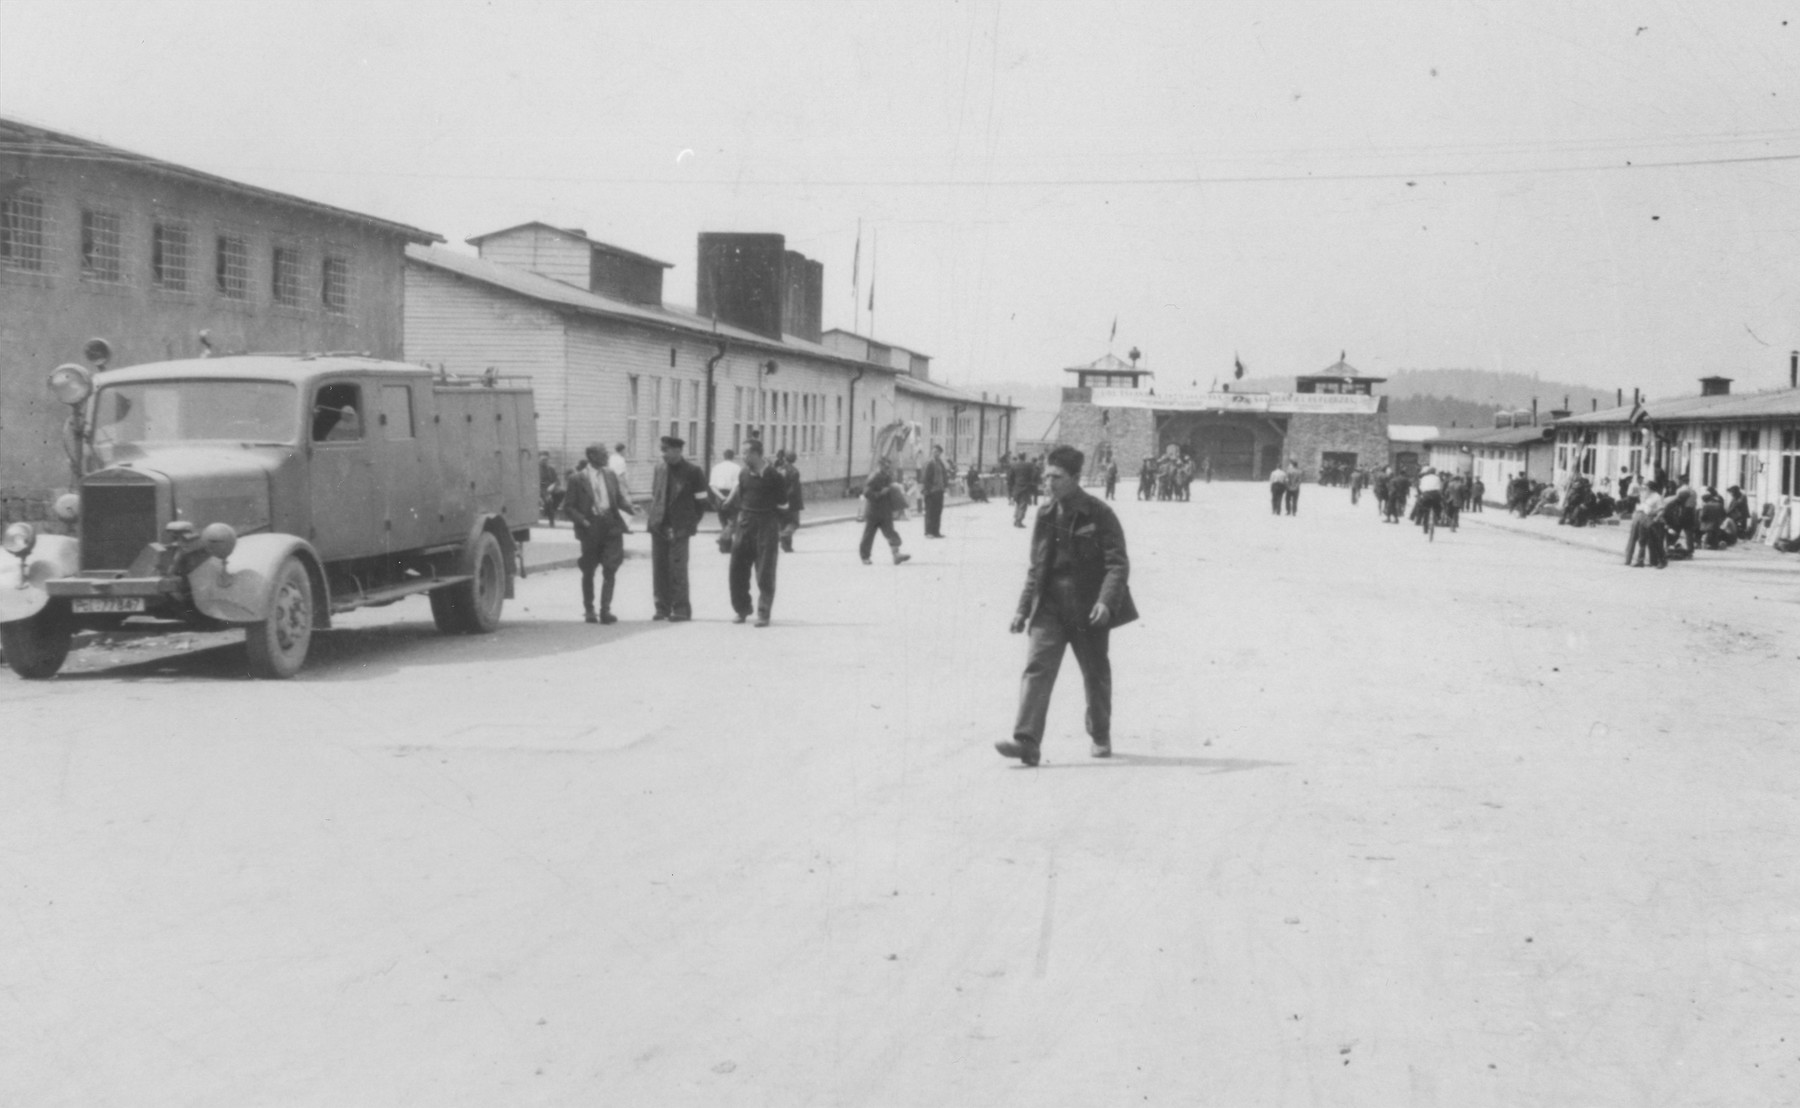 American liberators and survivors walk on the main street of the Mauthausen concentration camp.